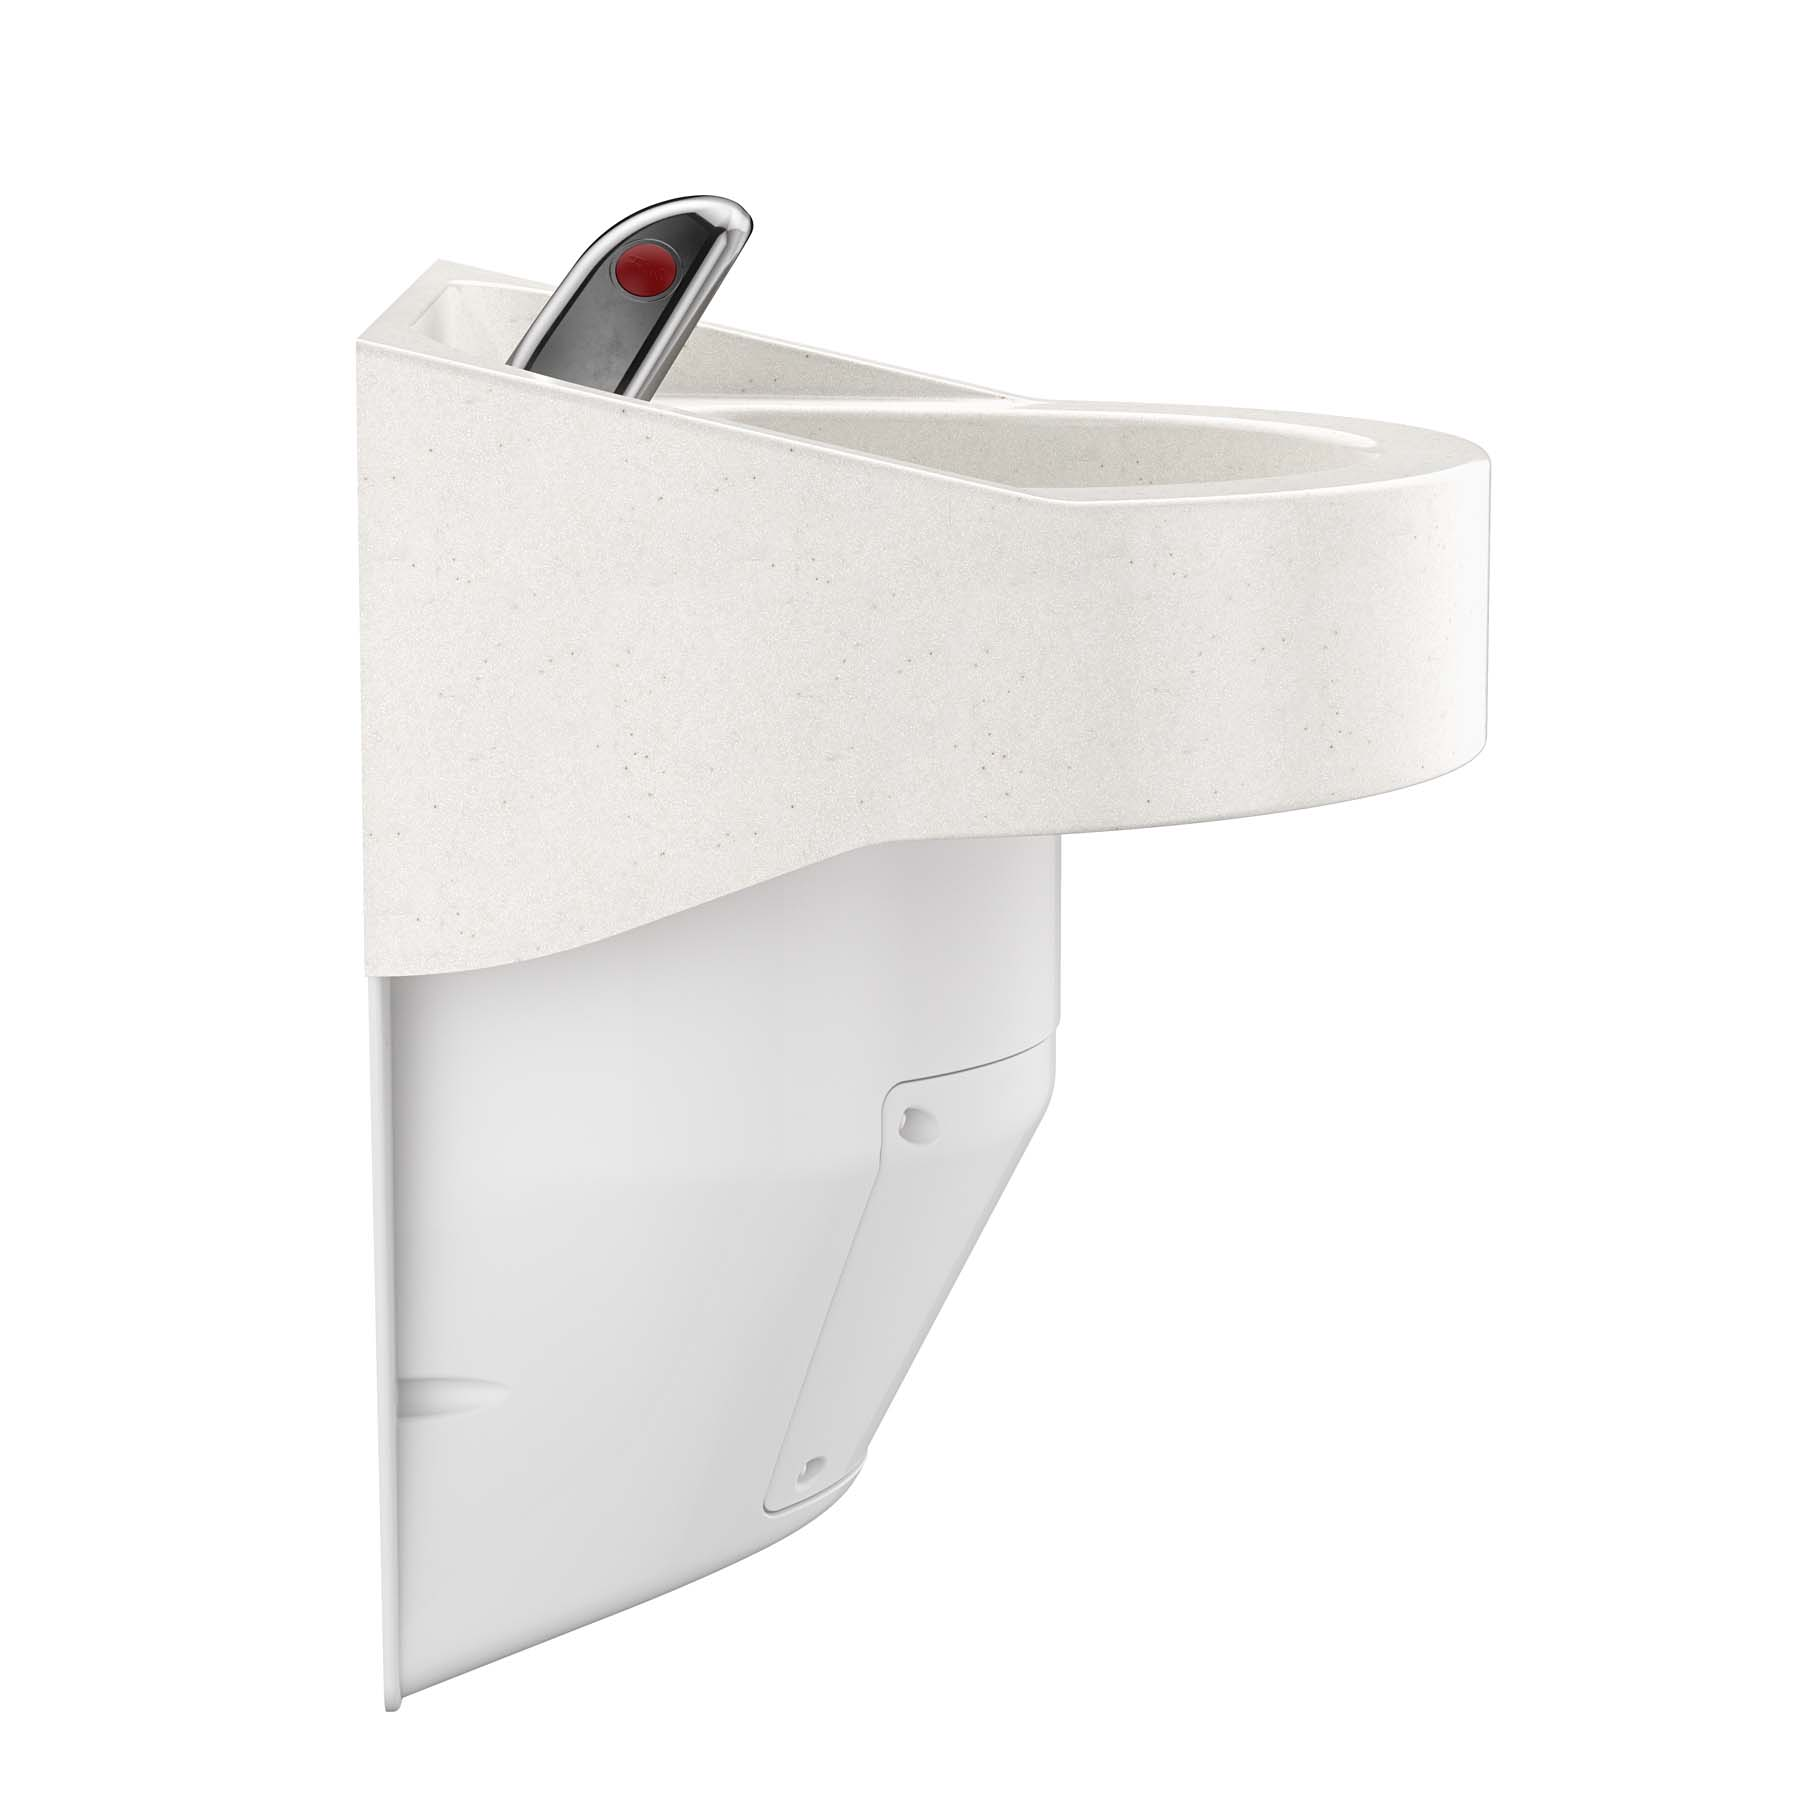 Ligature Resistant Sink and Trap Cover - Full Side Angle